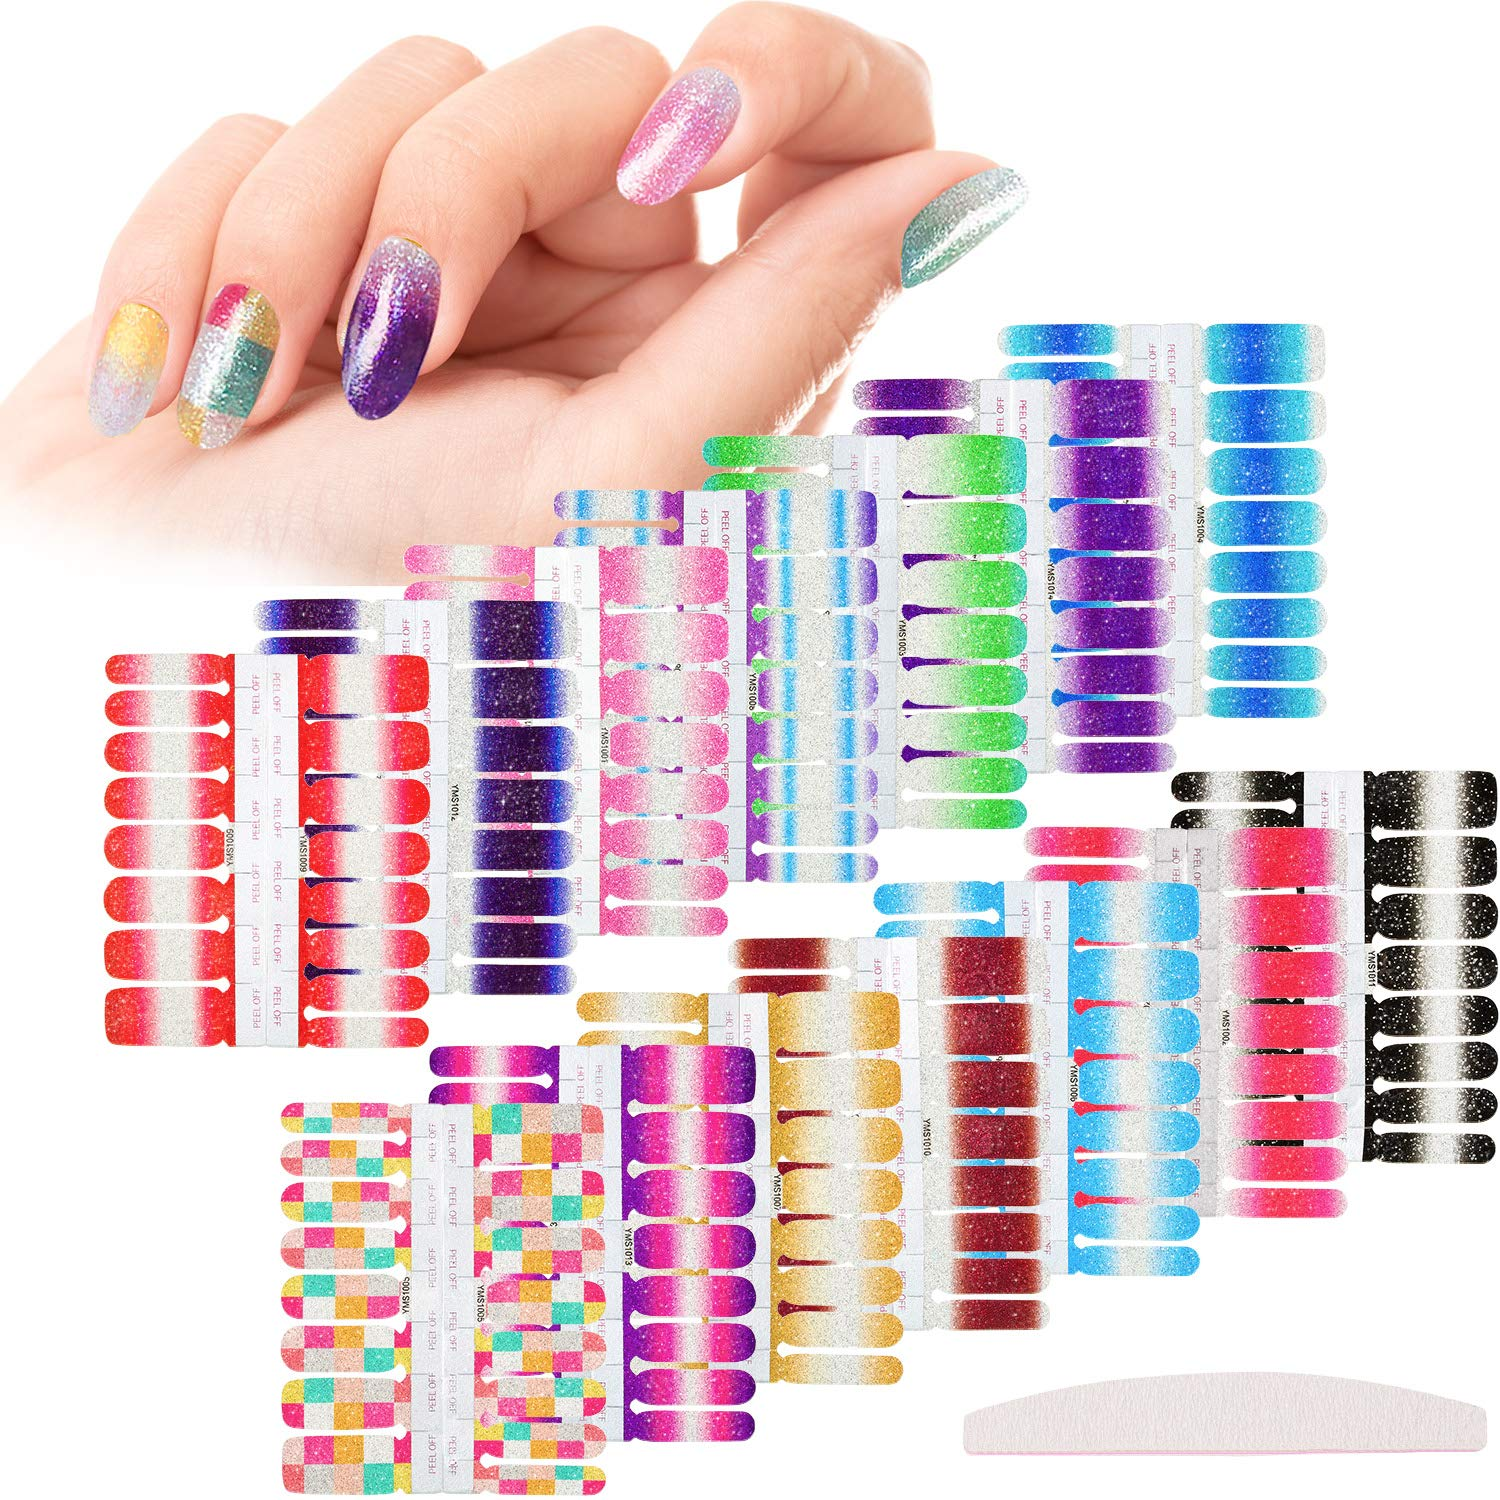 14 Sheets Glitter Nail Wraps Full Nail Art Polish Stickers Pure color Shine Nail Wrap Stickers Adhesive Nail Decals False Nail Design Gradient Glittery Manicure Kit with 1 Piece Nail File by Outus